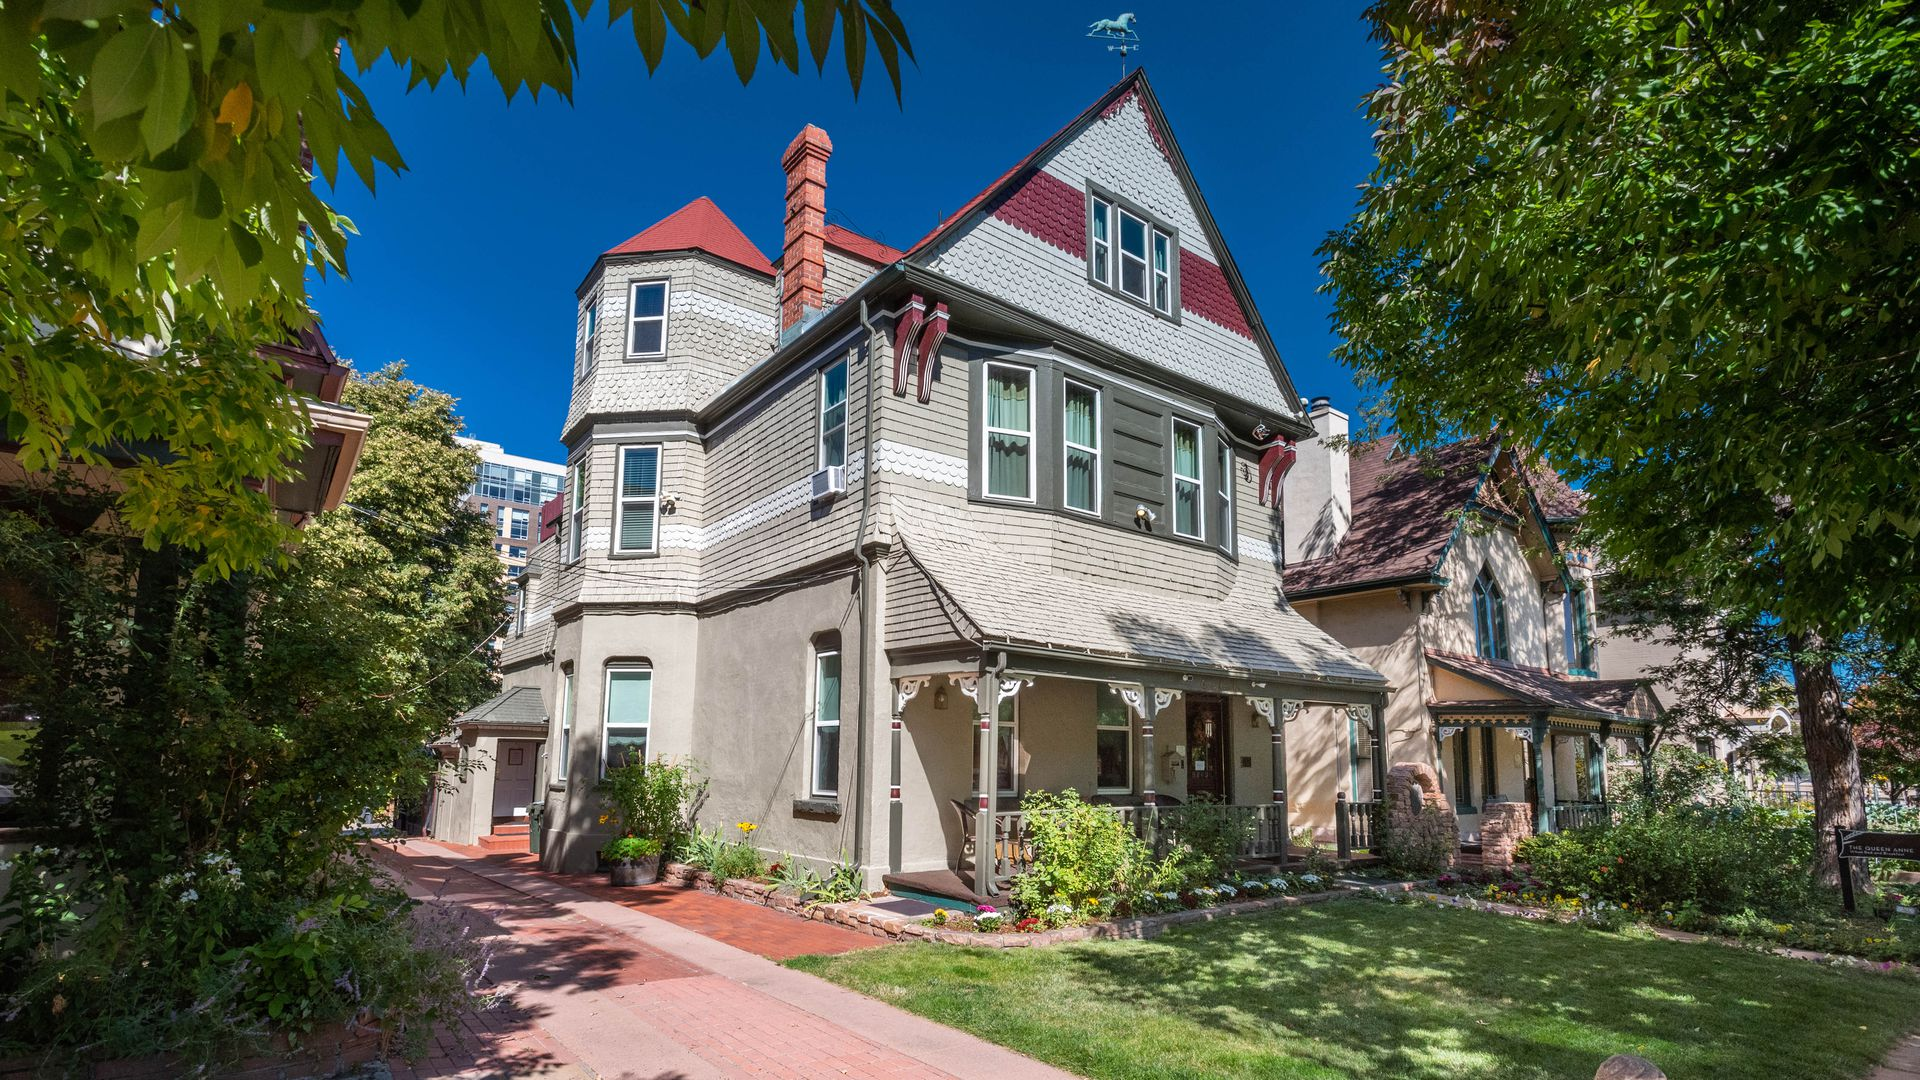 The Queen Anne Bed & Breakfast. Photo courtesy of LIV Sotheby's International Realty